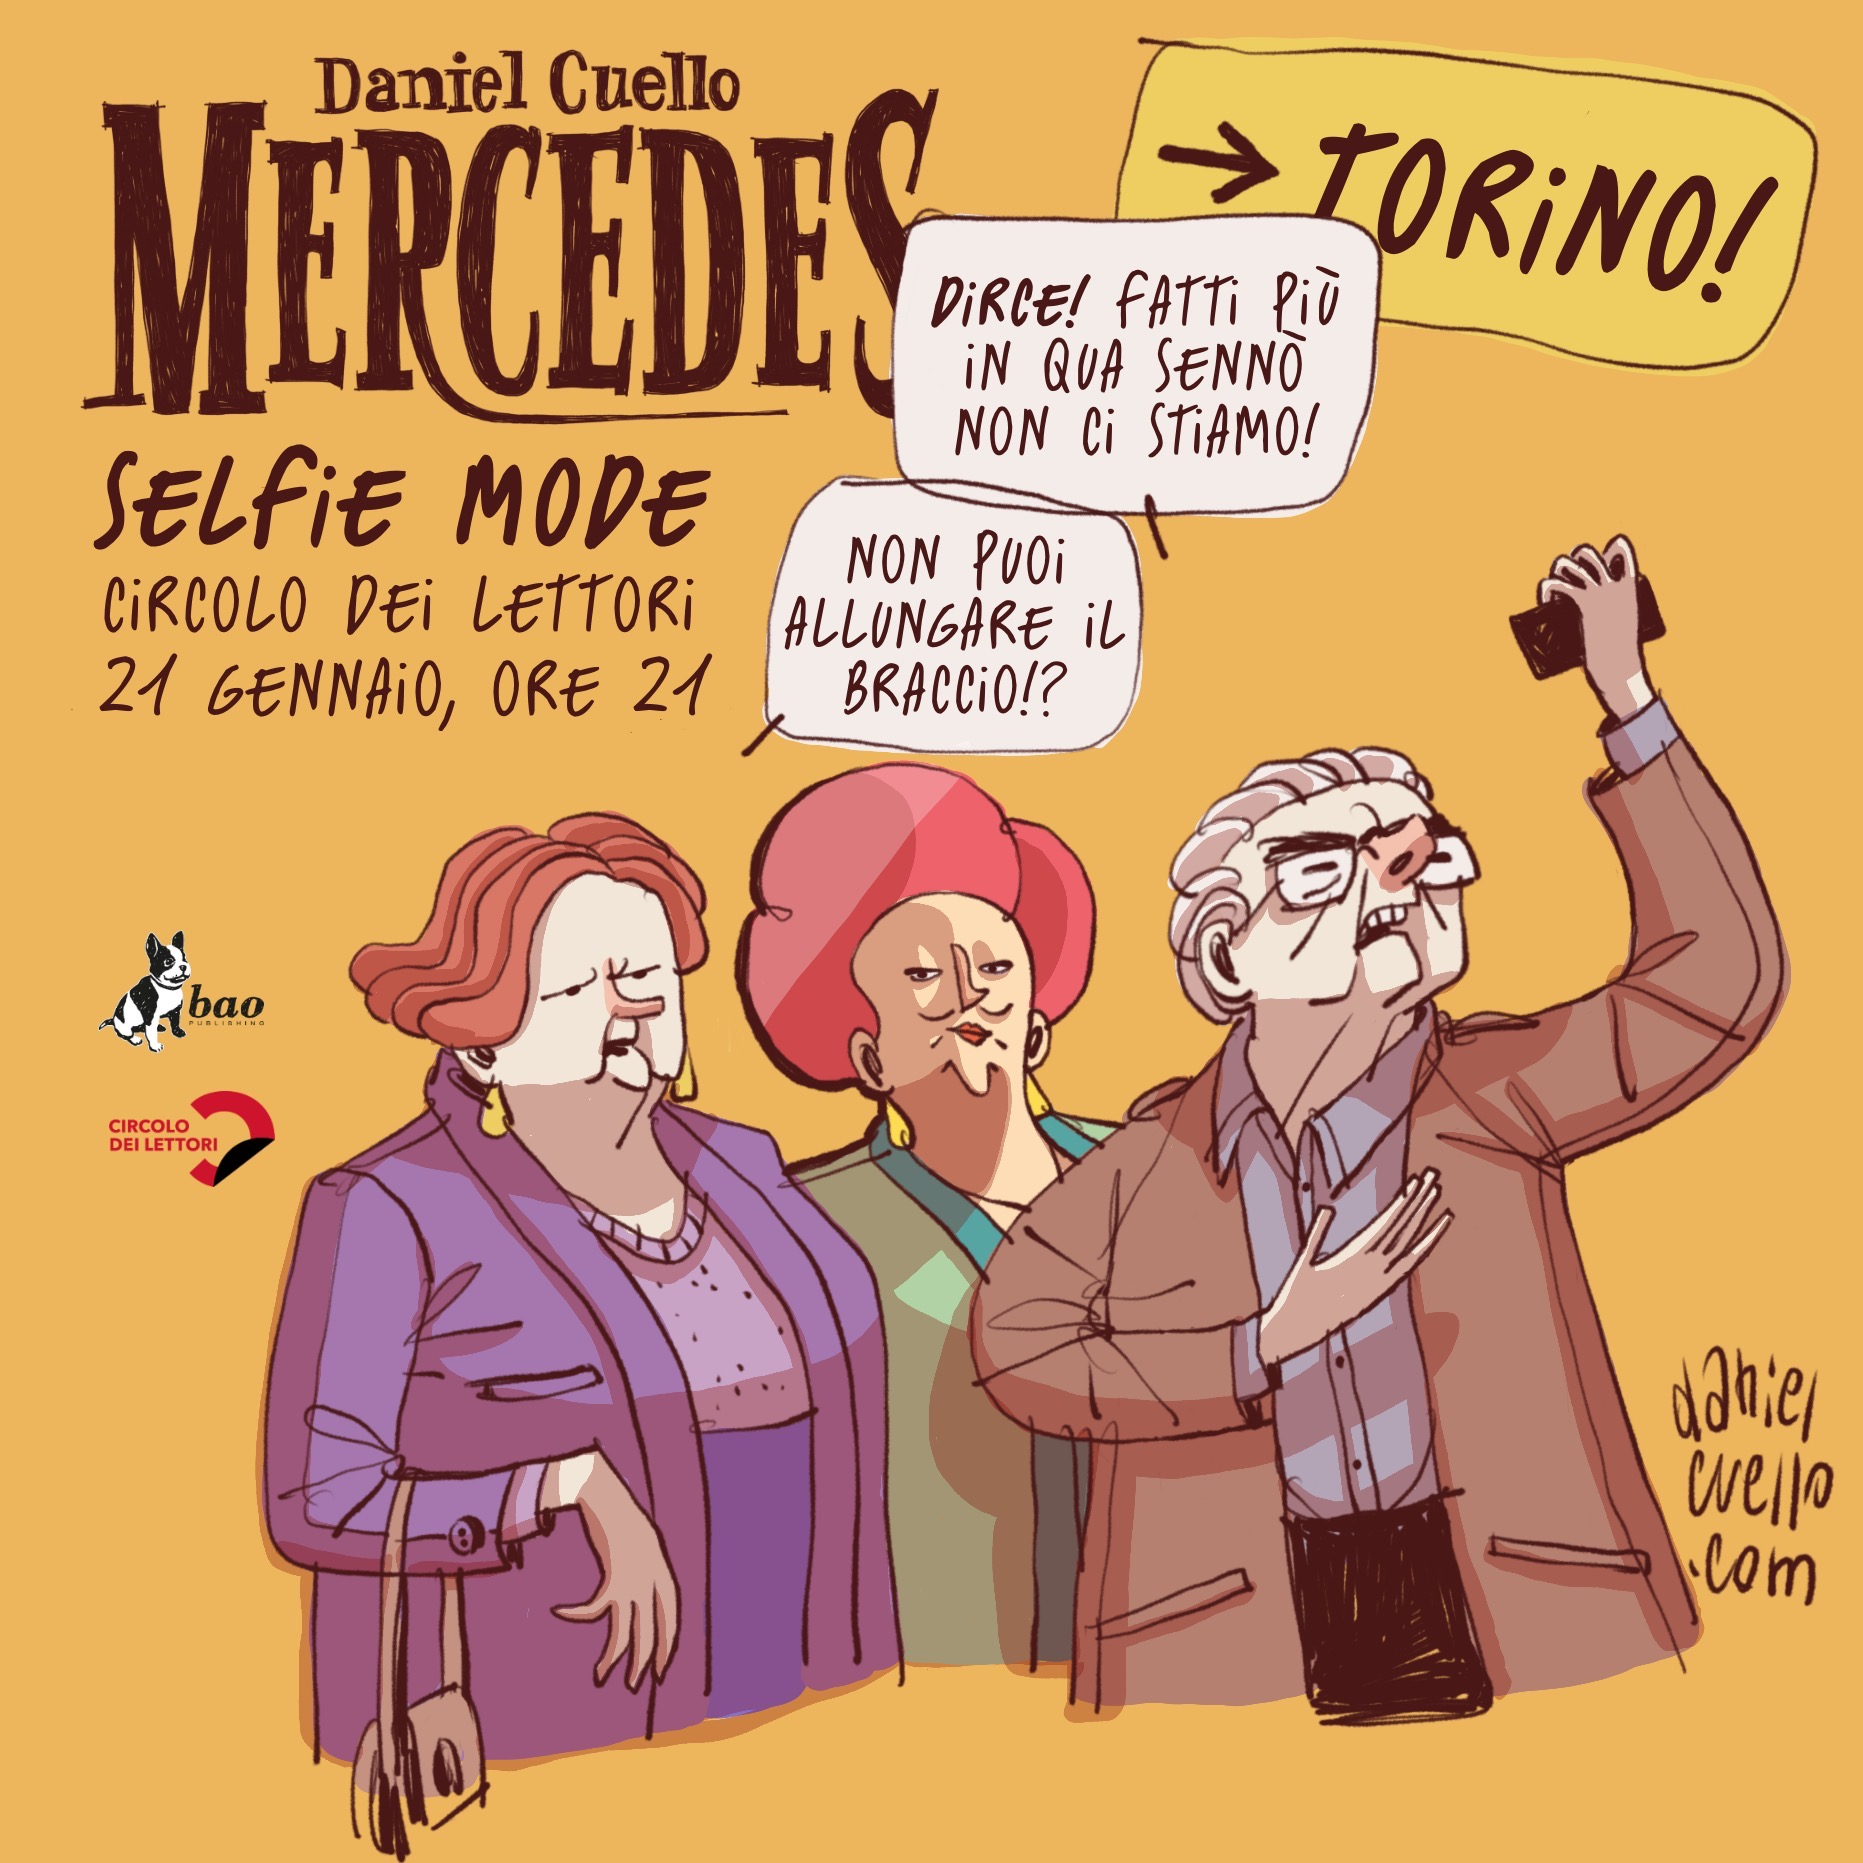 Mercedes in selfie mode